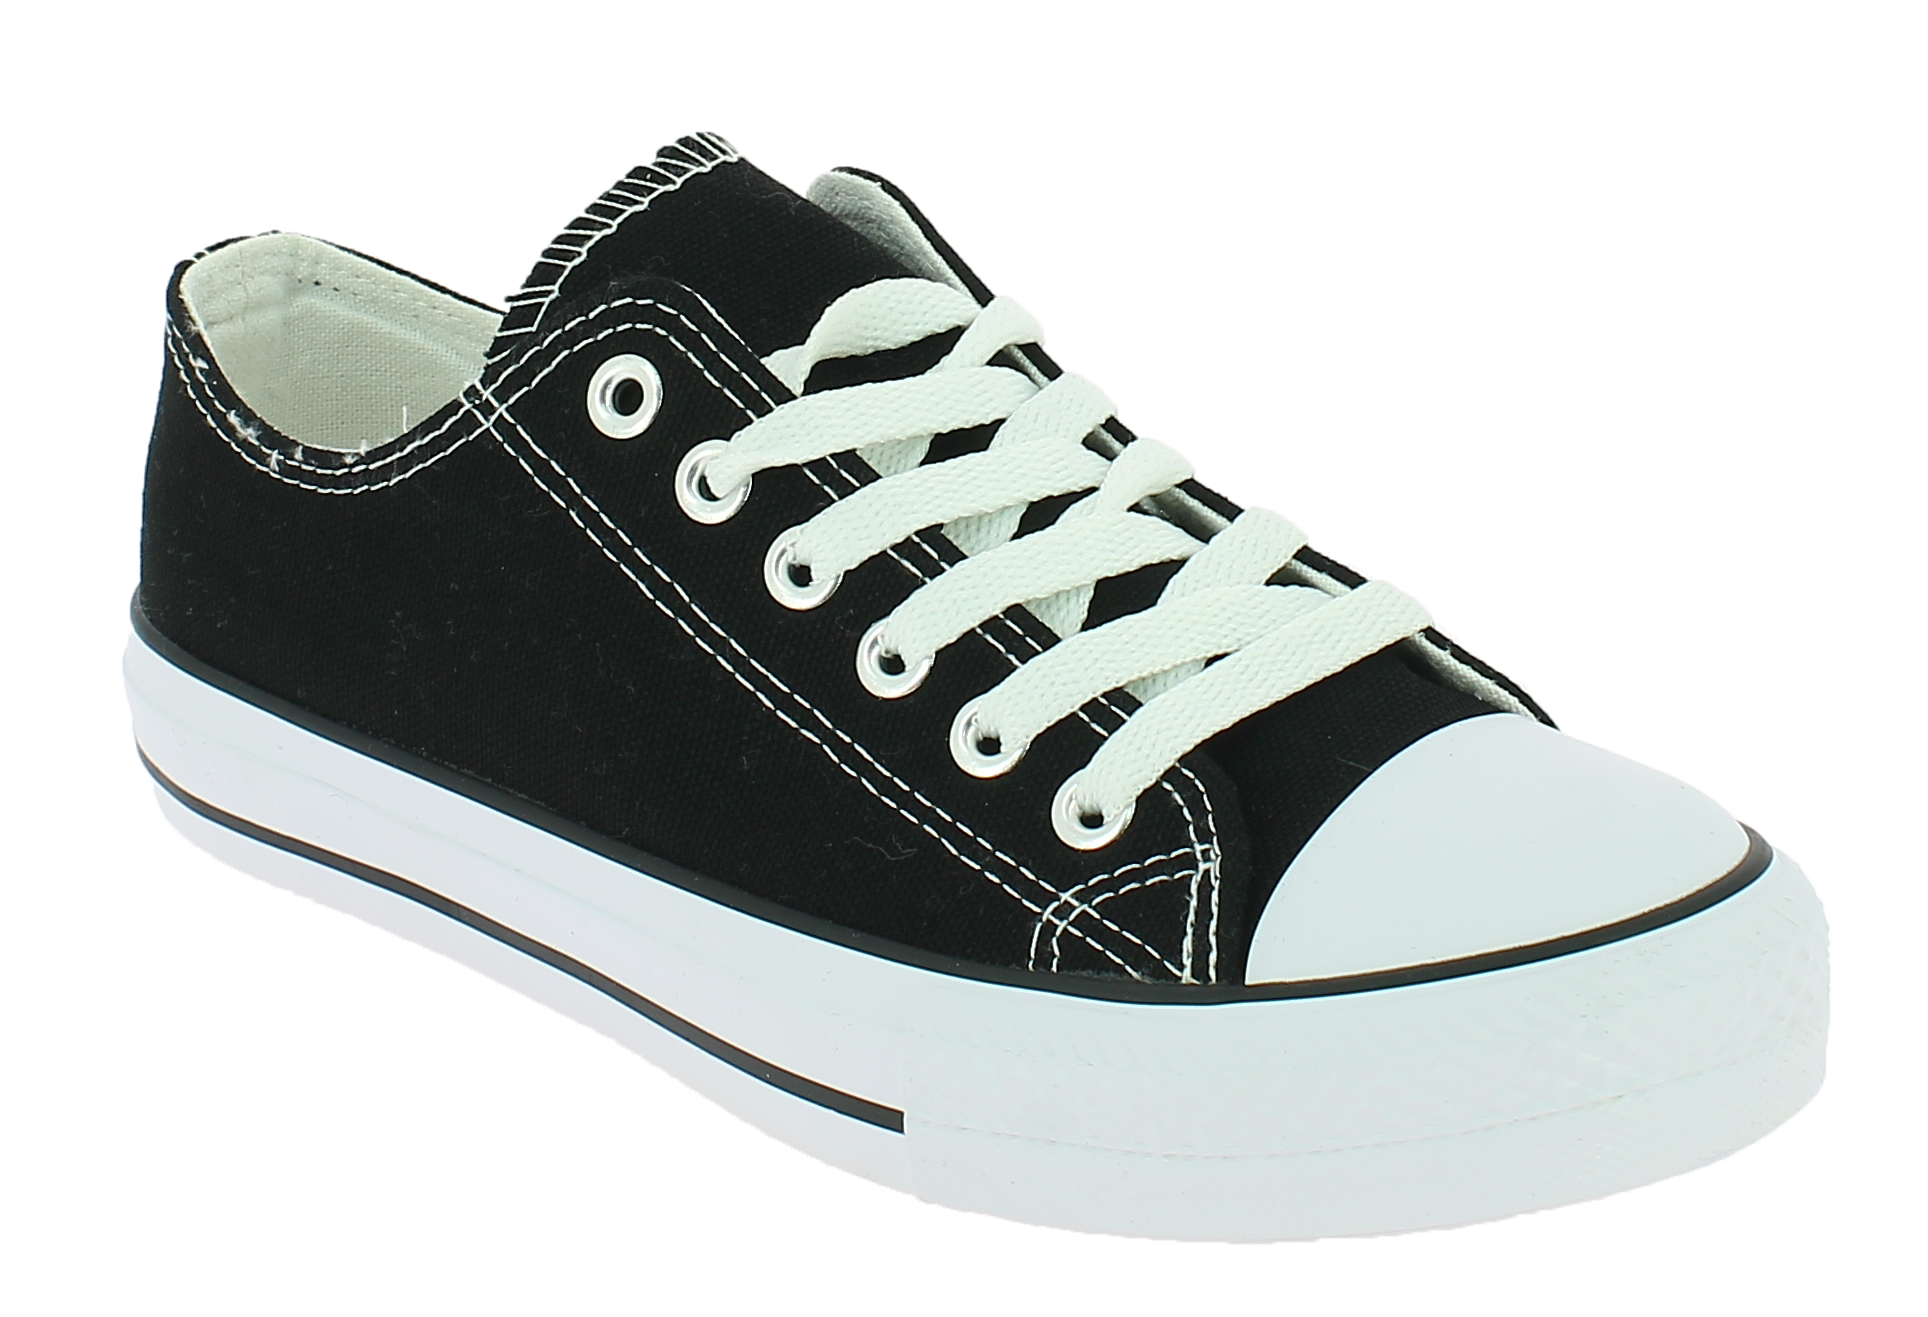 DEMAX Unisex Casual A1612K Μαύρο - IqShoes - A1612K BLACK 35/41-black-36/1/15/7  styling tips outfits